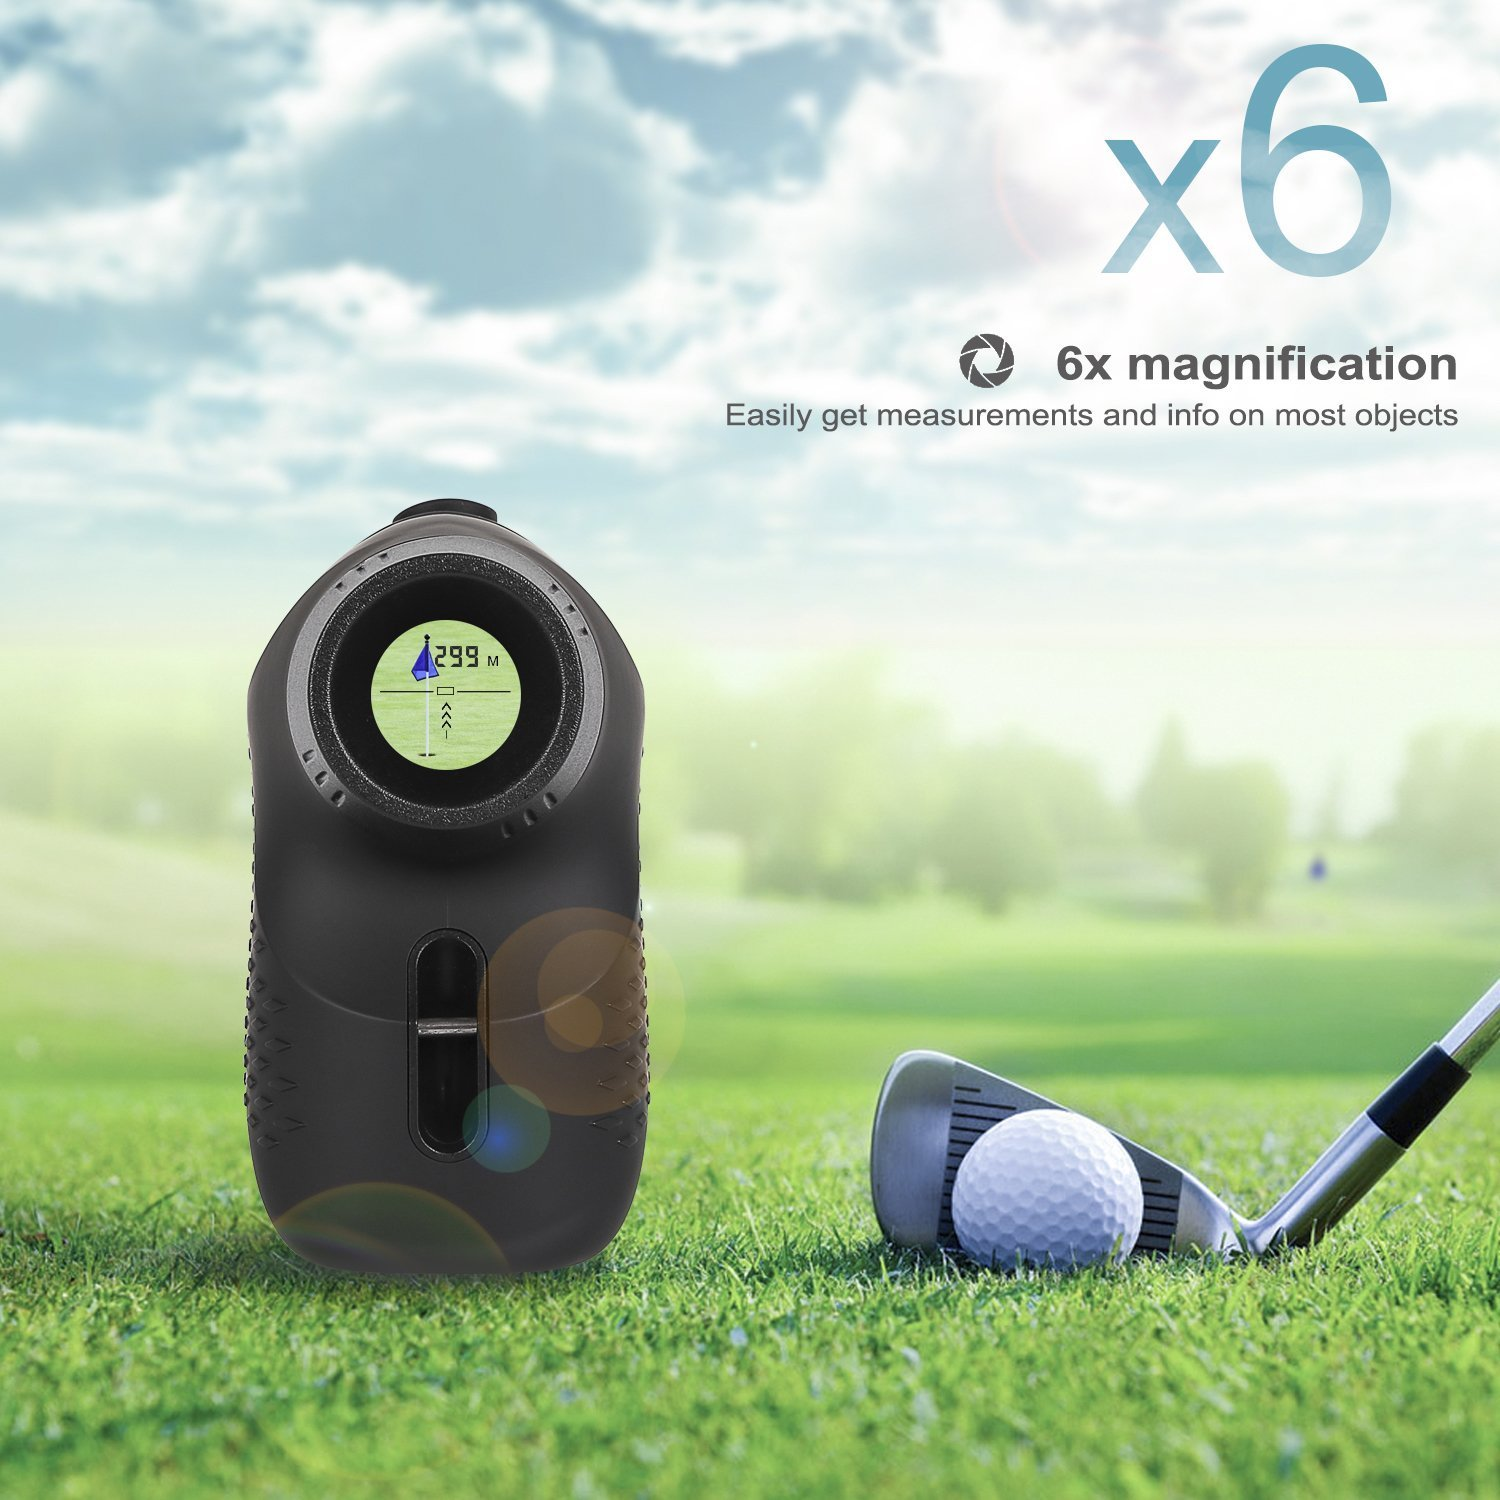 DEKO Golf Laser Rangefinder,Laser Range Finder with Slope, Fog,Scan,Precision Speed Measurement by DEKO (Image #5)